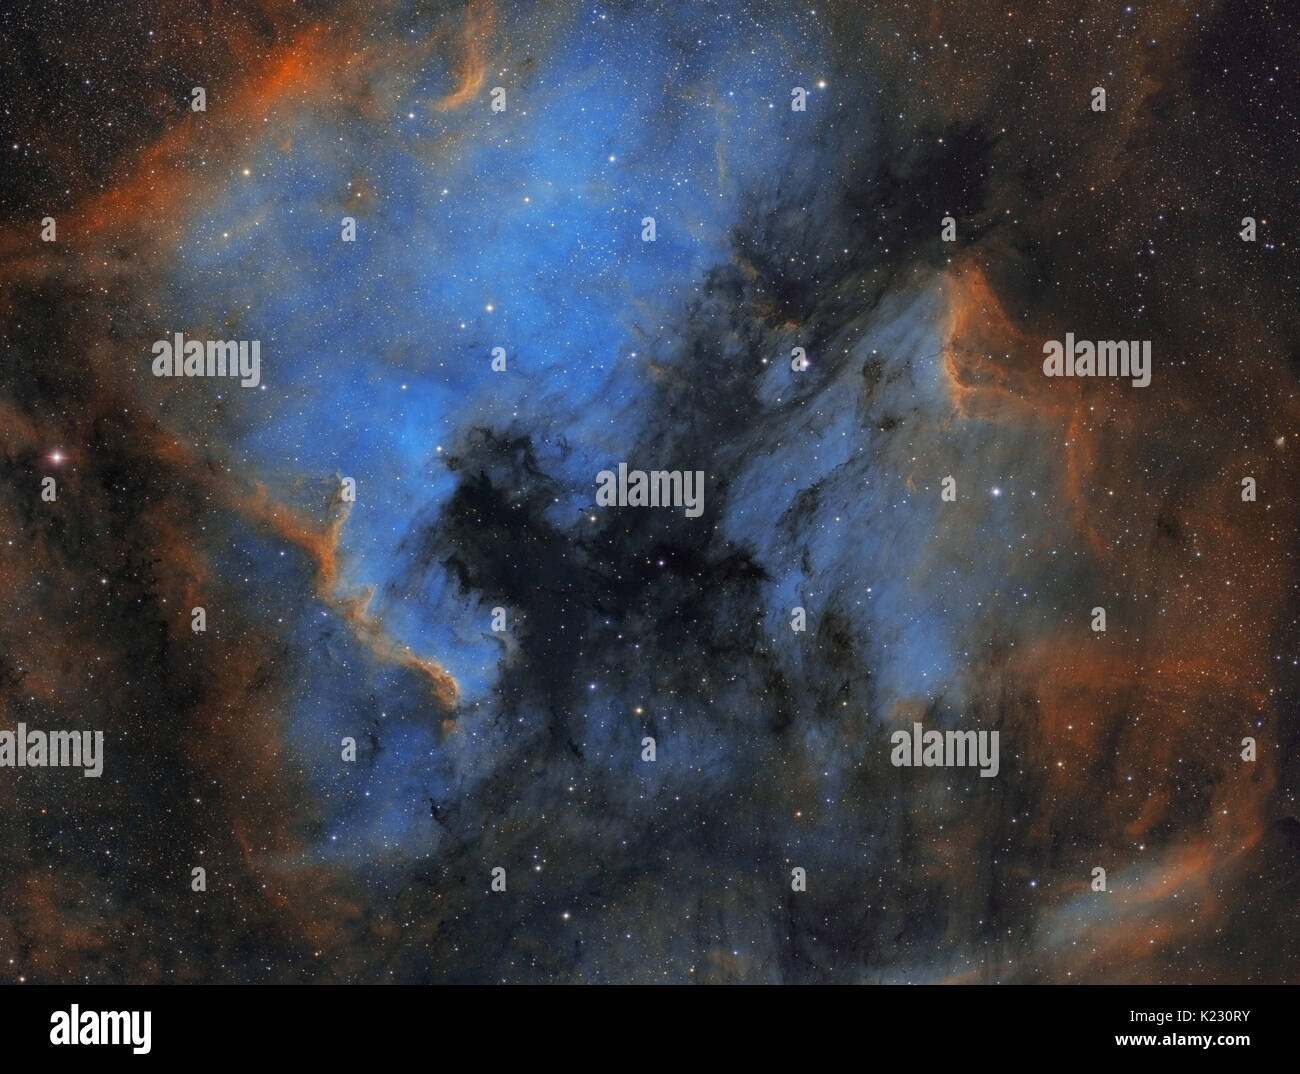 North America and Pelican nebulae in the constellation of Cygnus (The Swan) - Hubble Palette - Stock Image